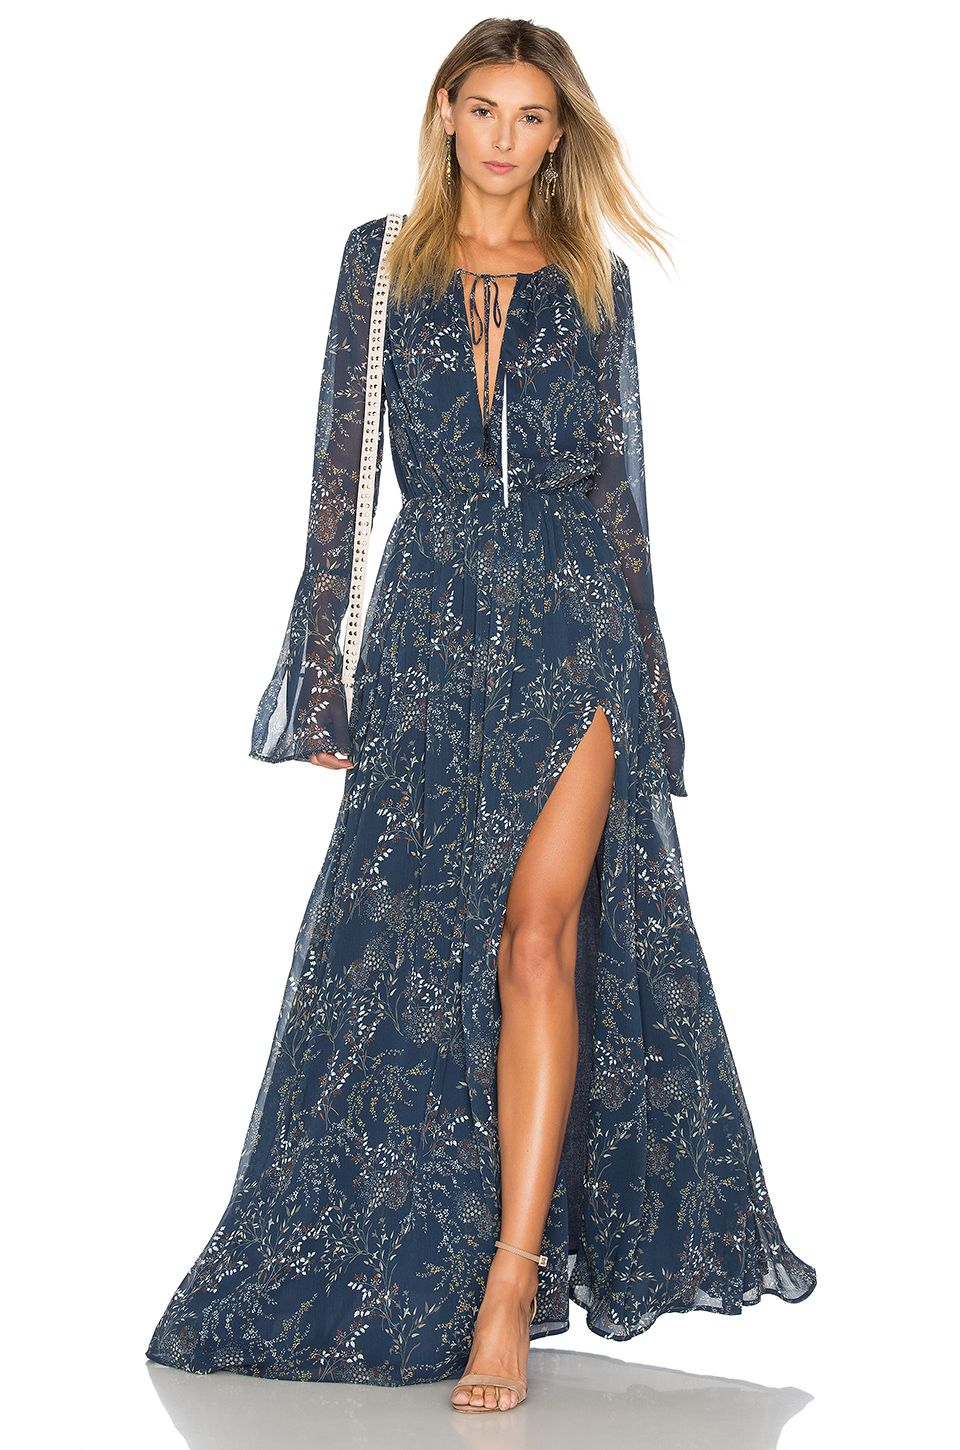 2f0cde795f5 THE JETSET DIARIES Mediterranean Maxi Dress in Mediterranean Floral ...